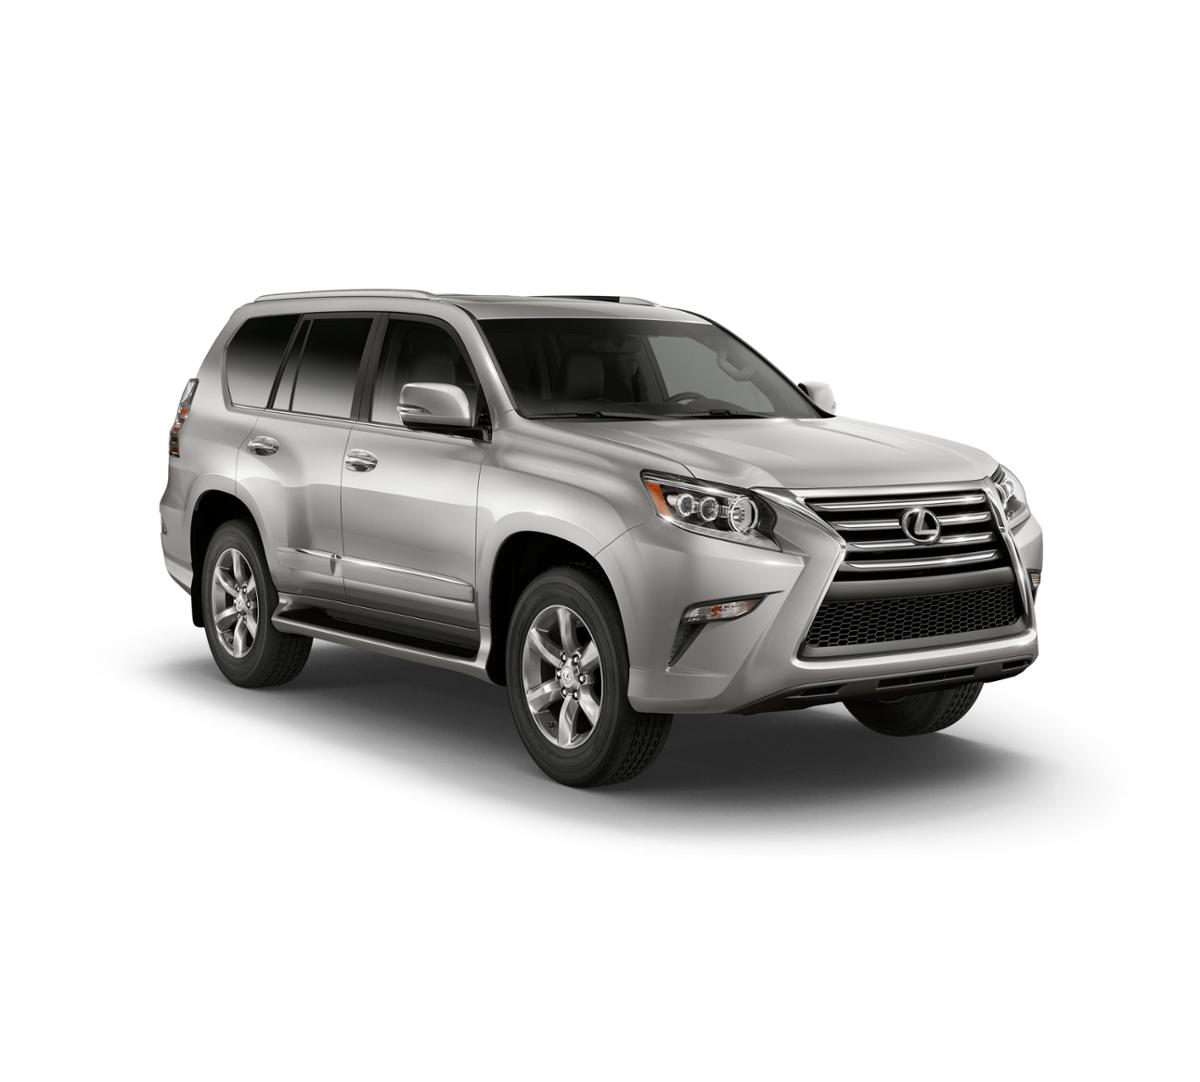 2018 Lexus GX 460 Vehicle Photo in Las Vegas, NV 89146